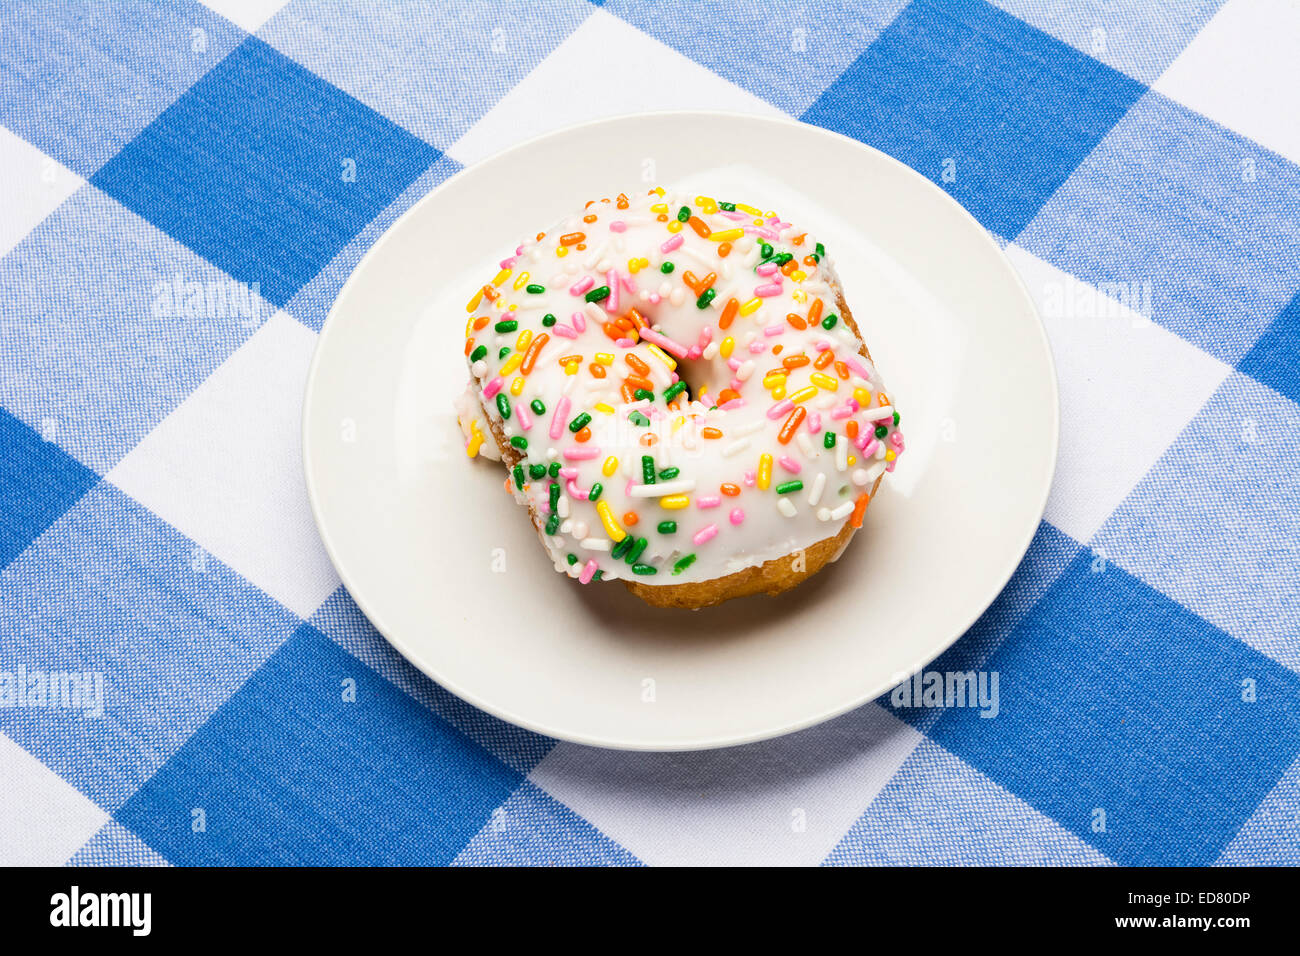 A fresh, delicious icing coated cake donut with sweet sprinkles on a classic, checkered diner tablecloth D - Stock Image